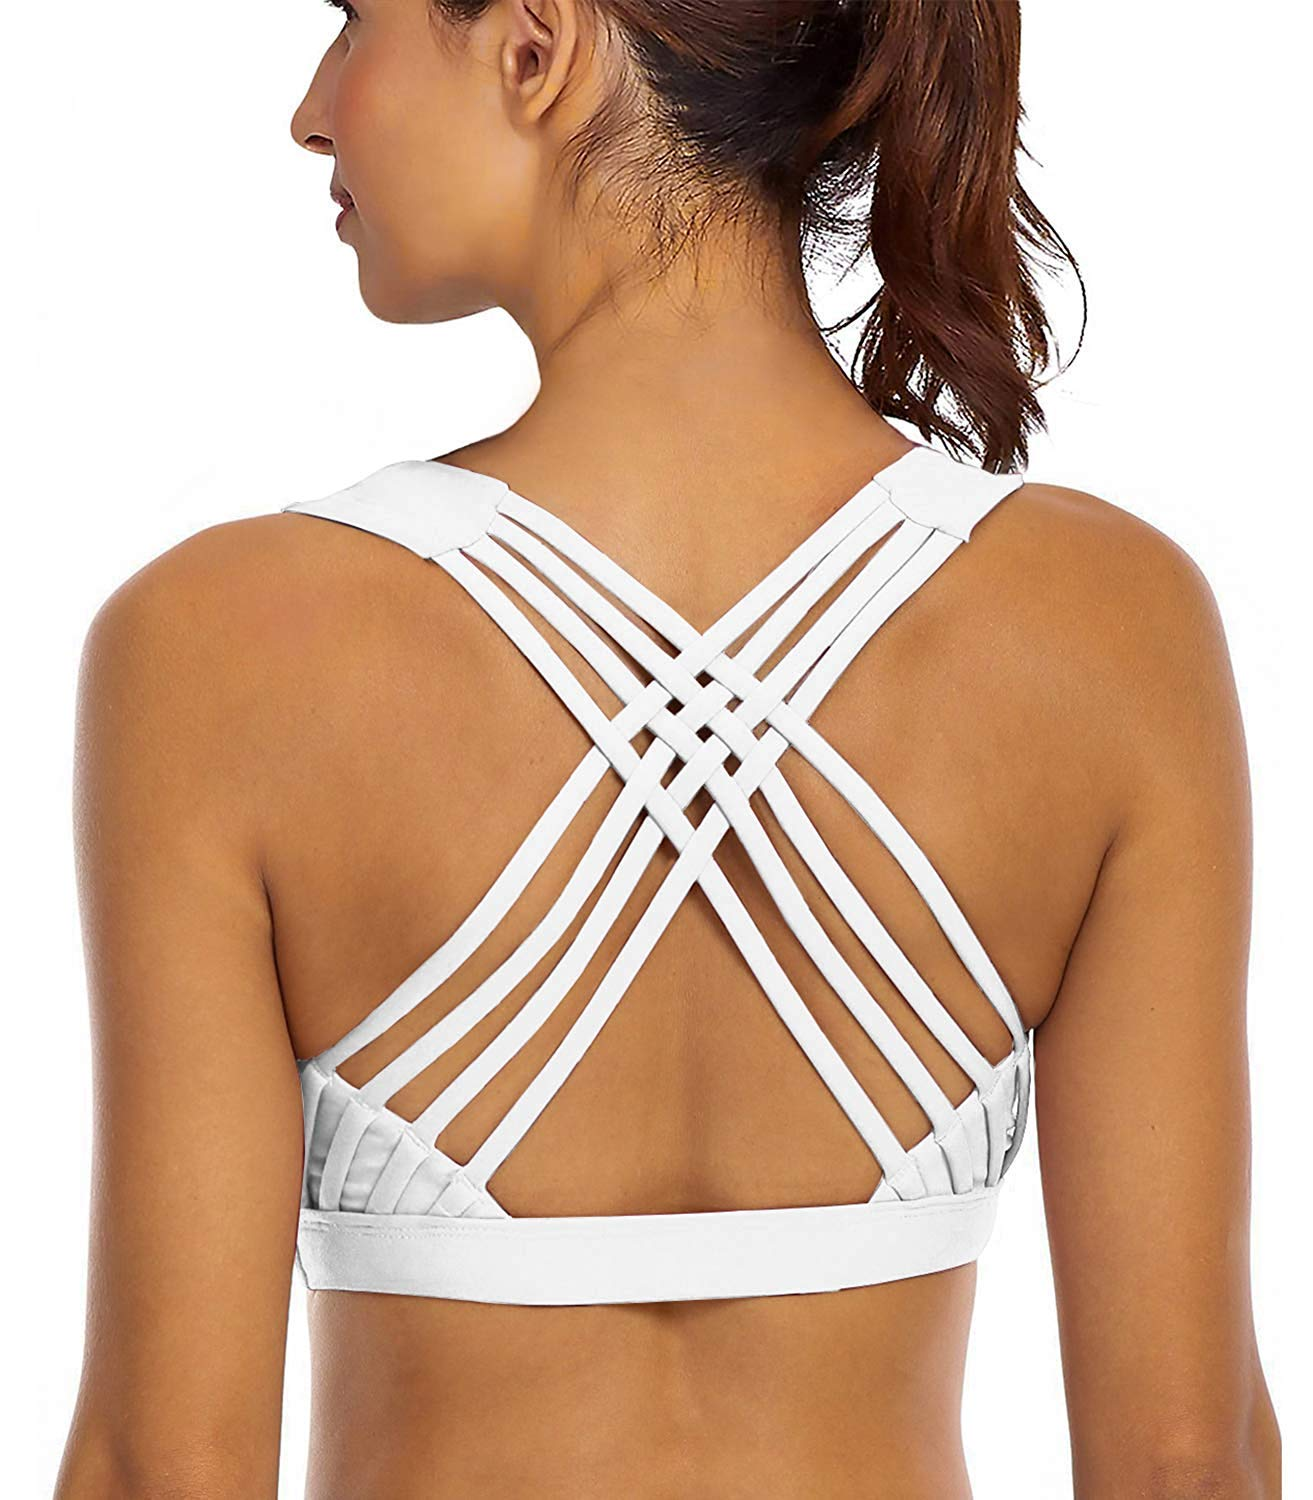 YIANNA Sports Bras for Women - Medium Support Strappy Sports Bra Padded for Yoga, Running, Fitness - Athletic Gym Tops,YA-BRA147-White-M by YIANNA